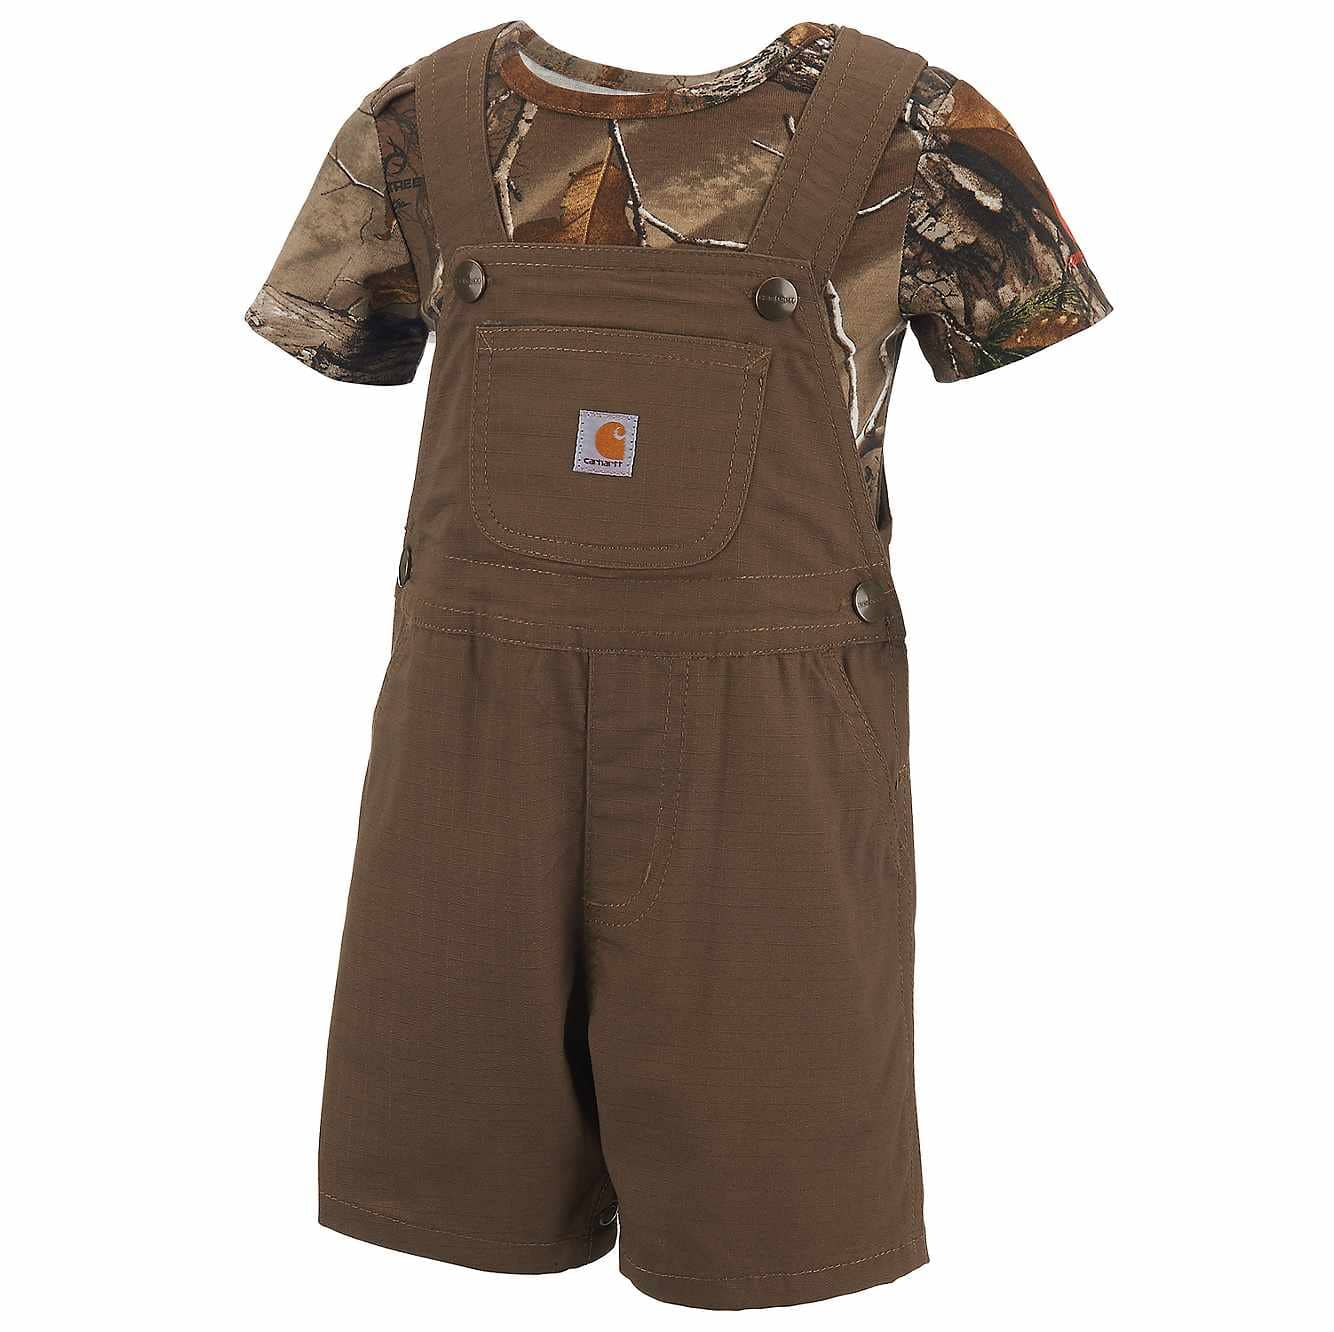 Picture of Infant/Toddler Camo Shortall Set in Canyon Brown